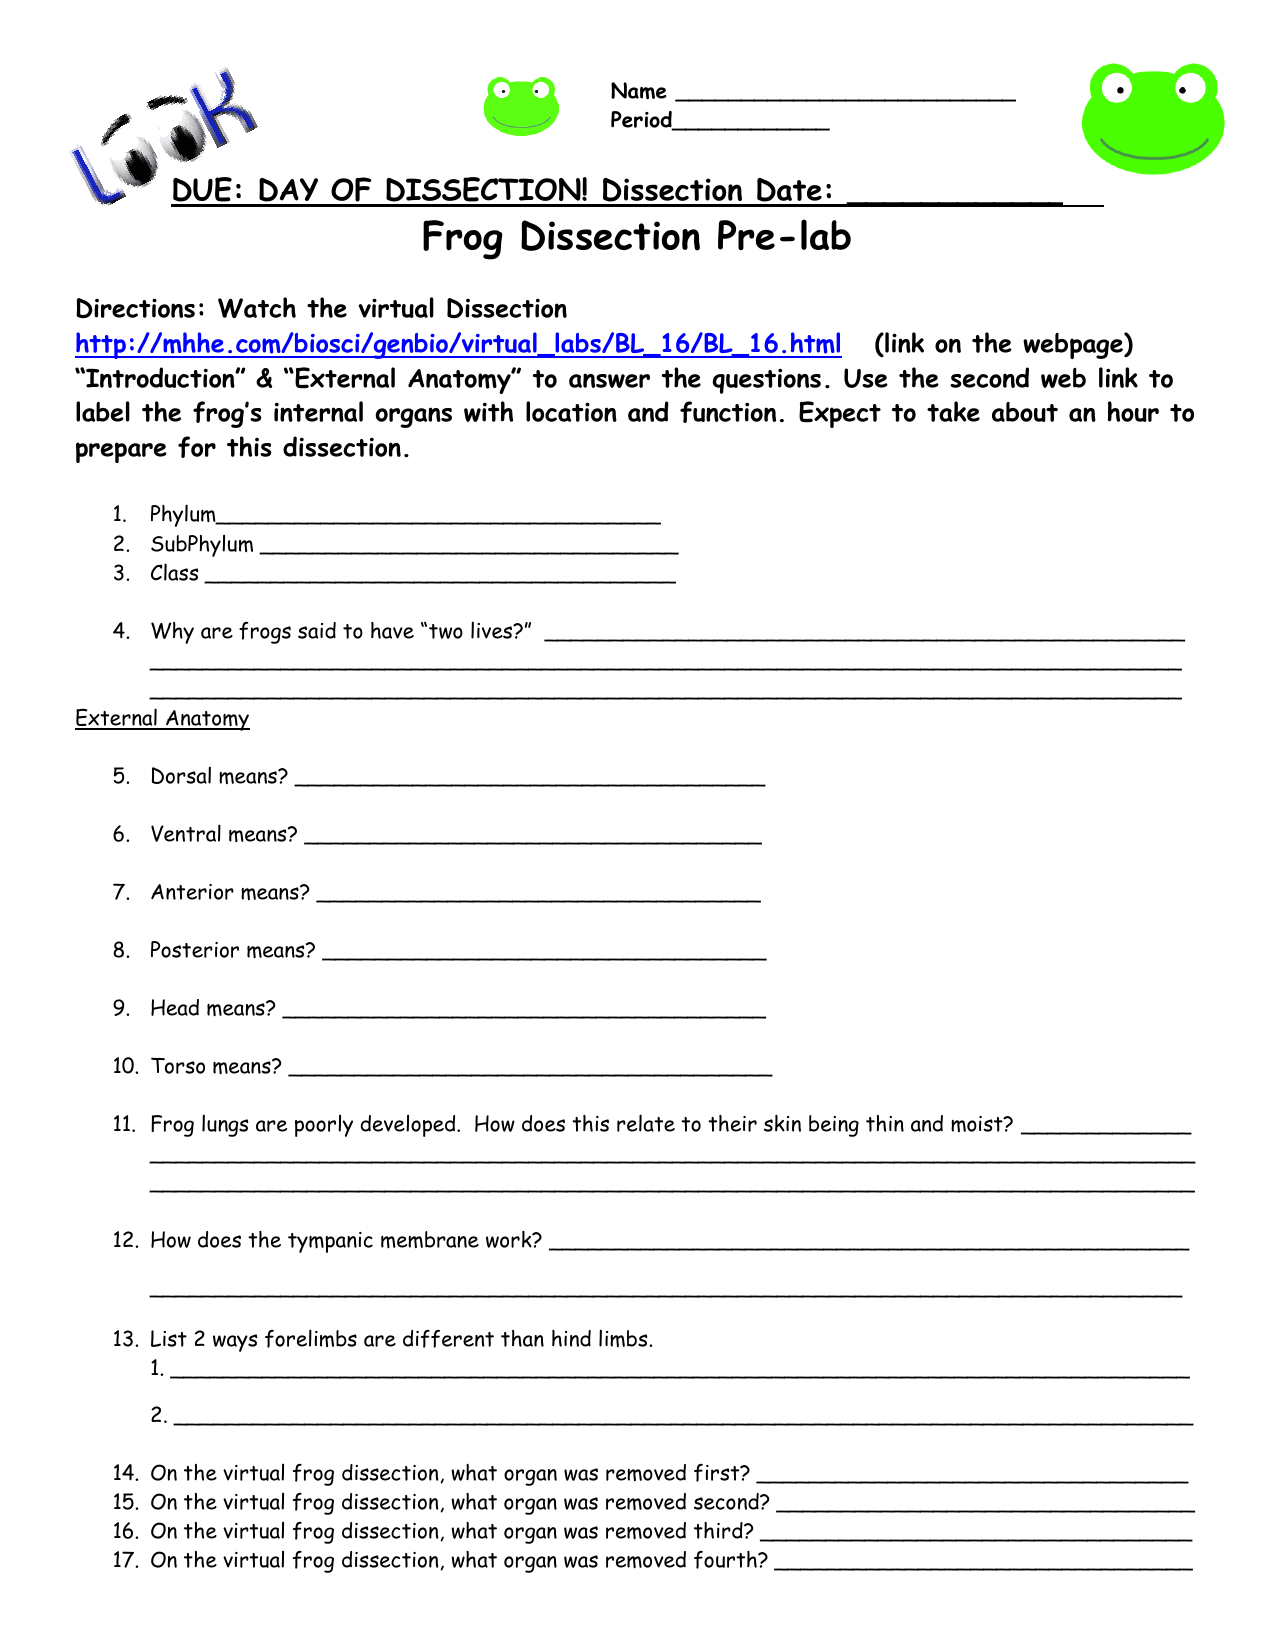 Frog Dissection Worksheet For Frog Dissection Worksheet Answers